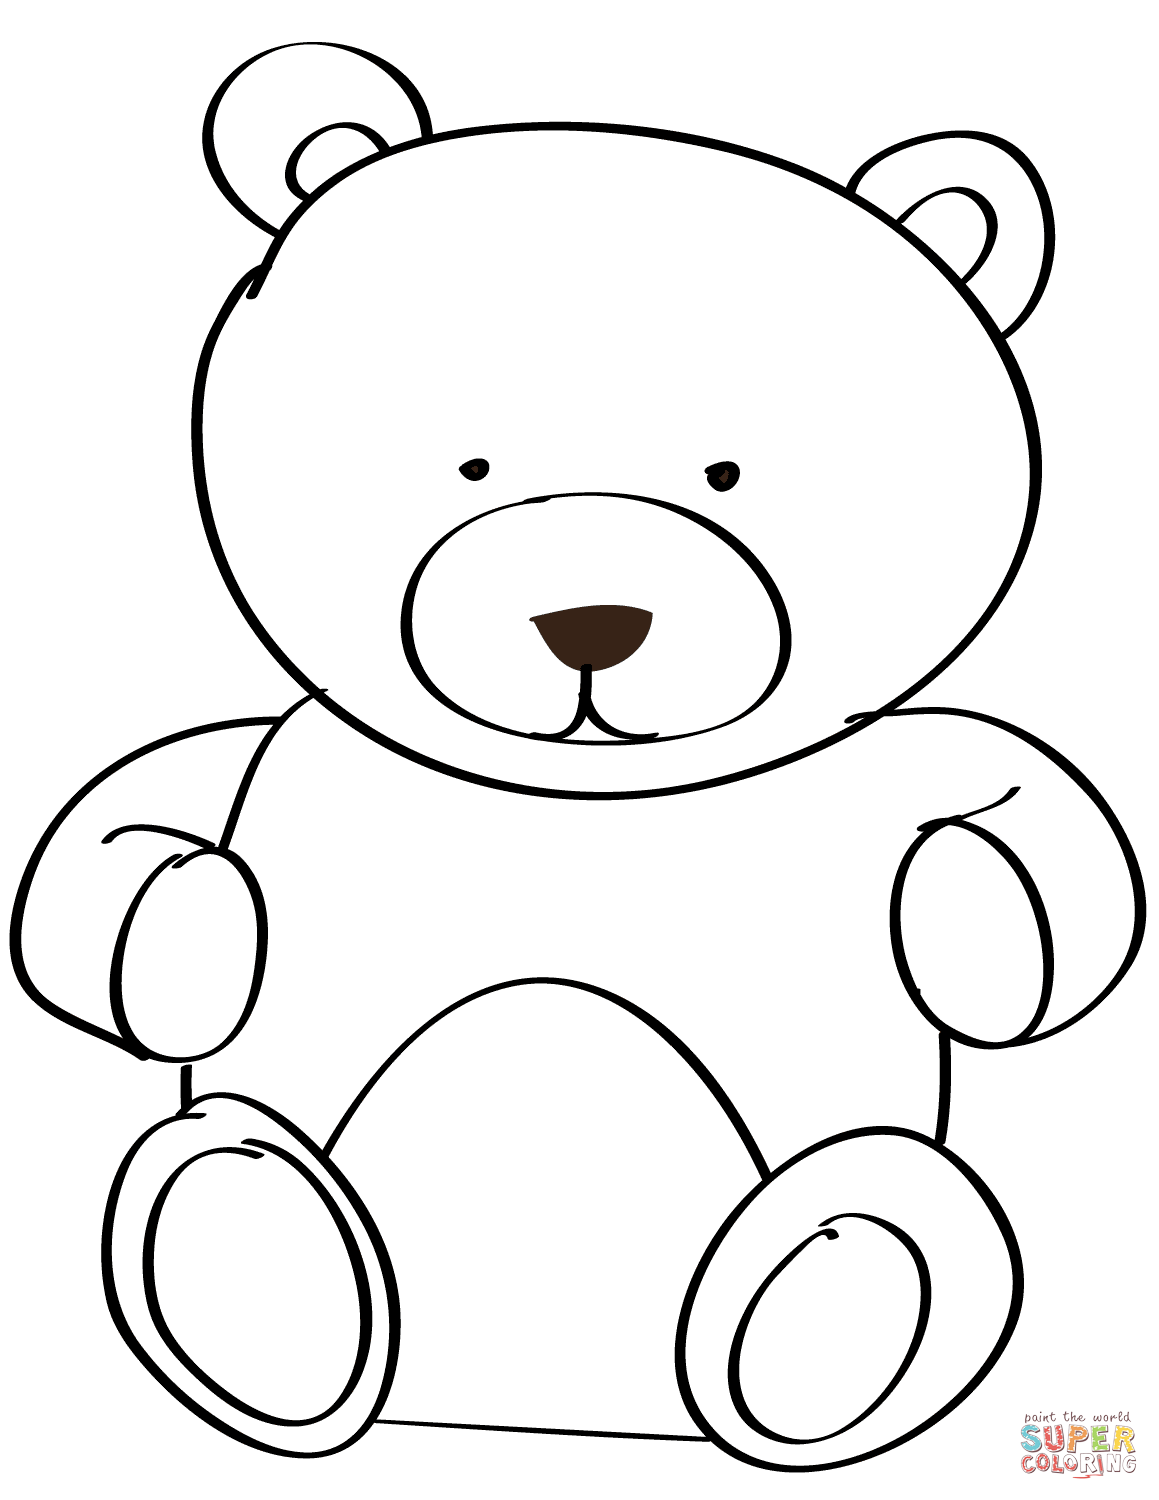 Toy Bear Drawing at GetDrawings.com | Free for personal use Toy Bear ...